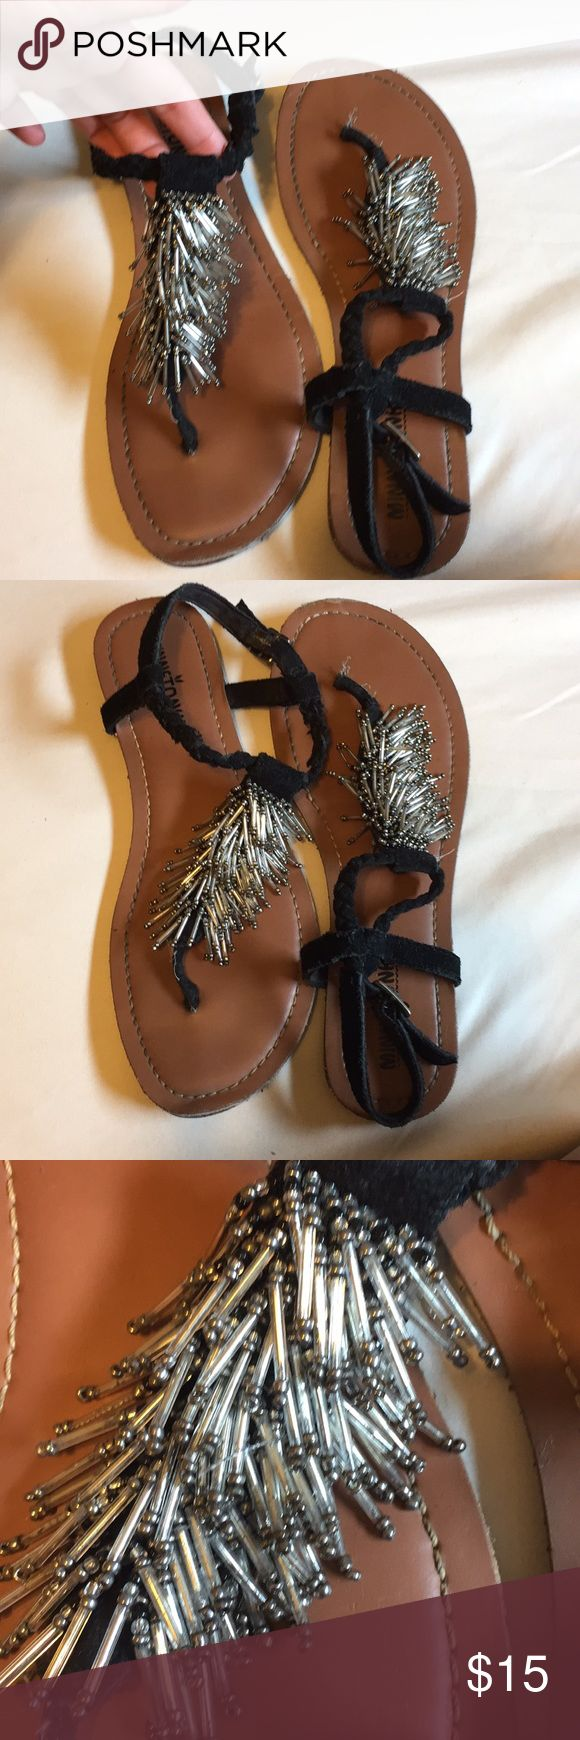 Minnetonka sandals-black suede breaking with beads Size 7. Minnetonka sandals. Gently loved, good condition. Black suede braided straps with silver embellish beading! Adorable to wear! Minnetonka Shoes Sandals